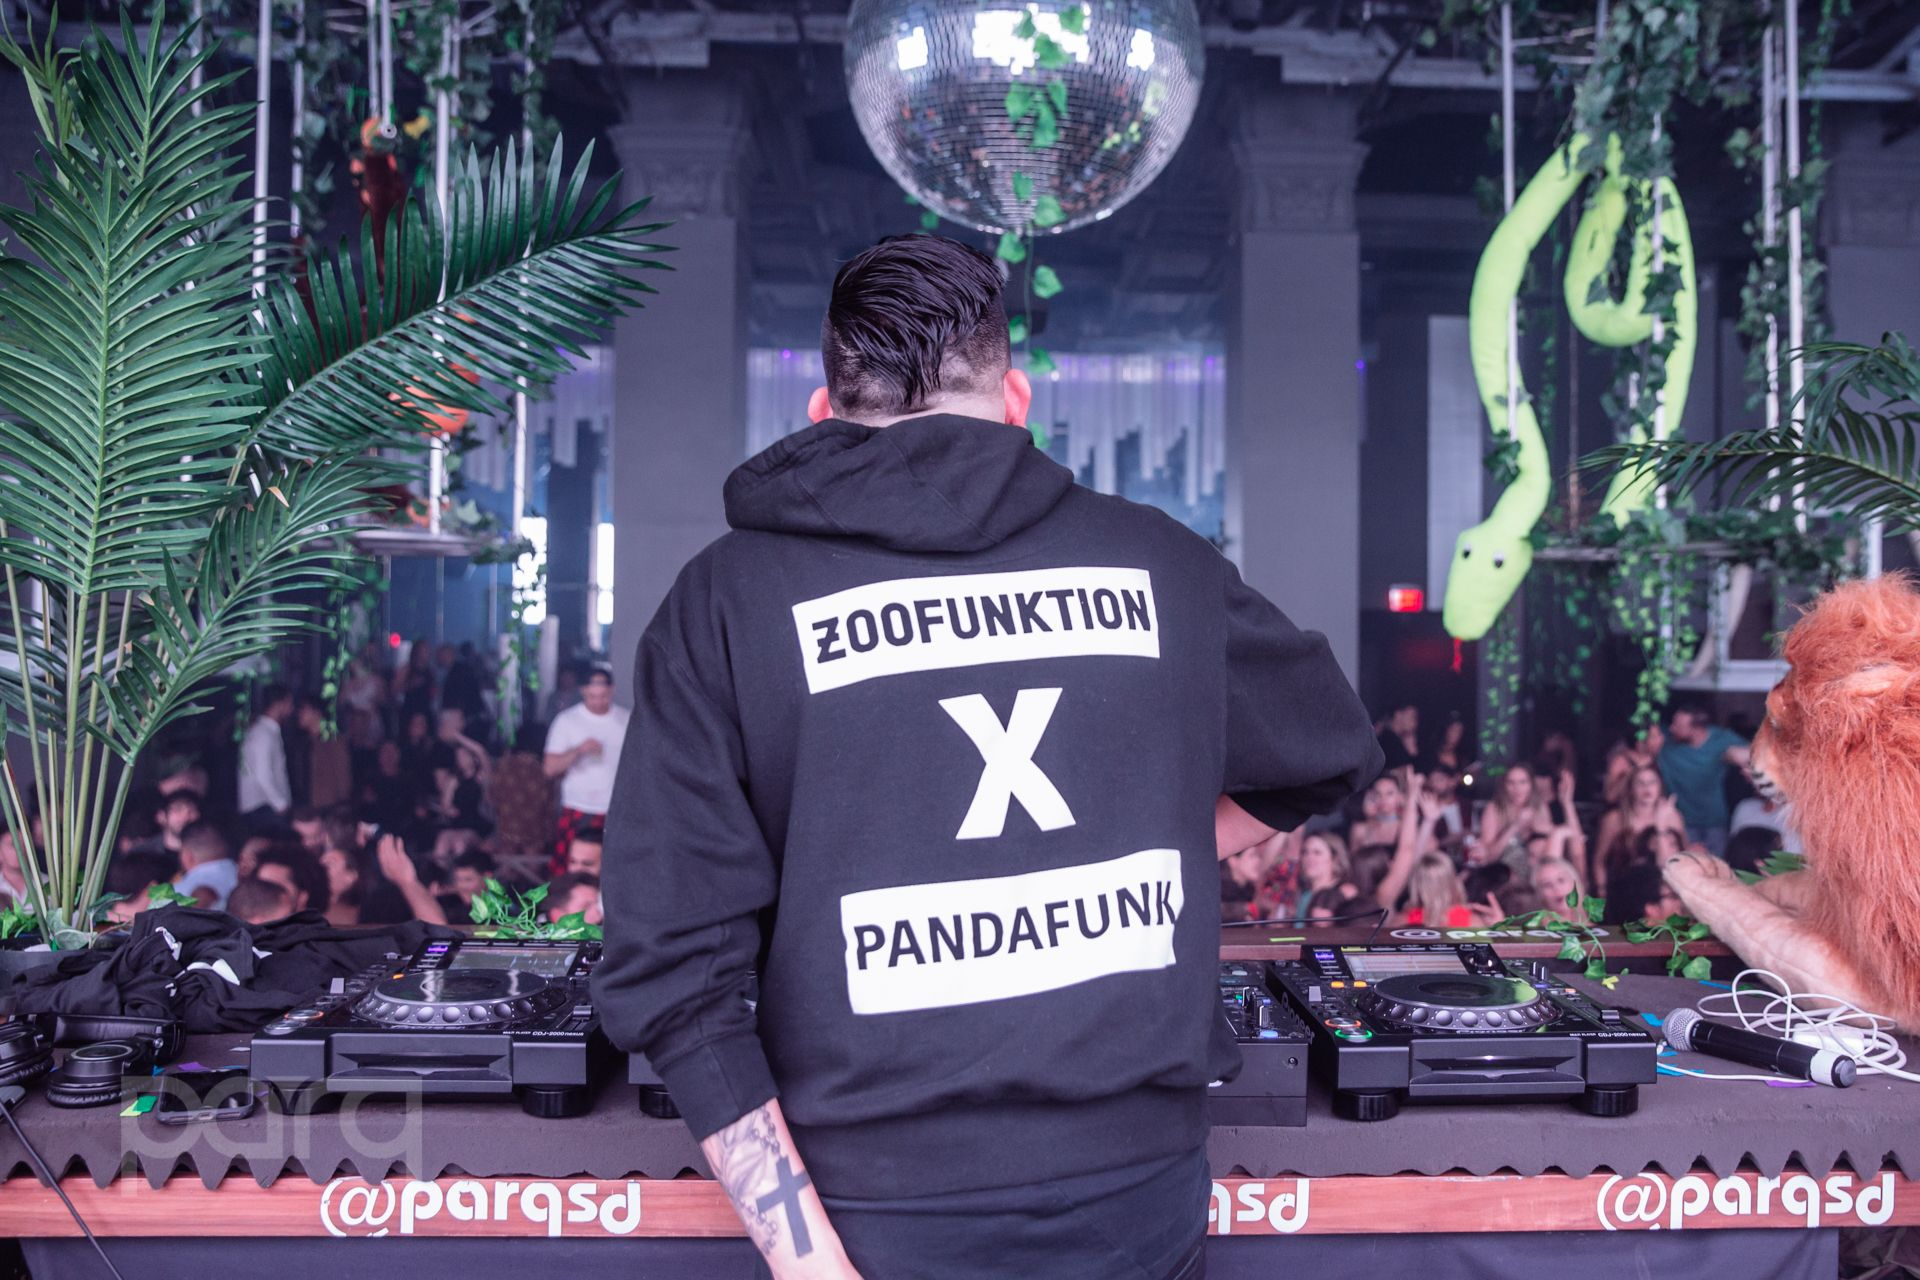 04.22.17 Zoo Funktion-30.jpg